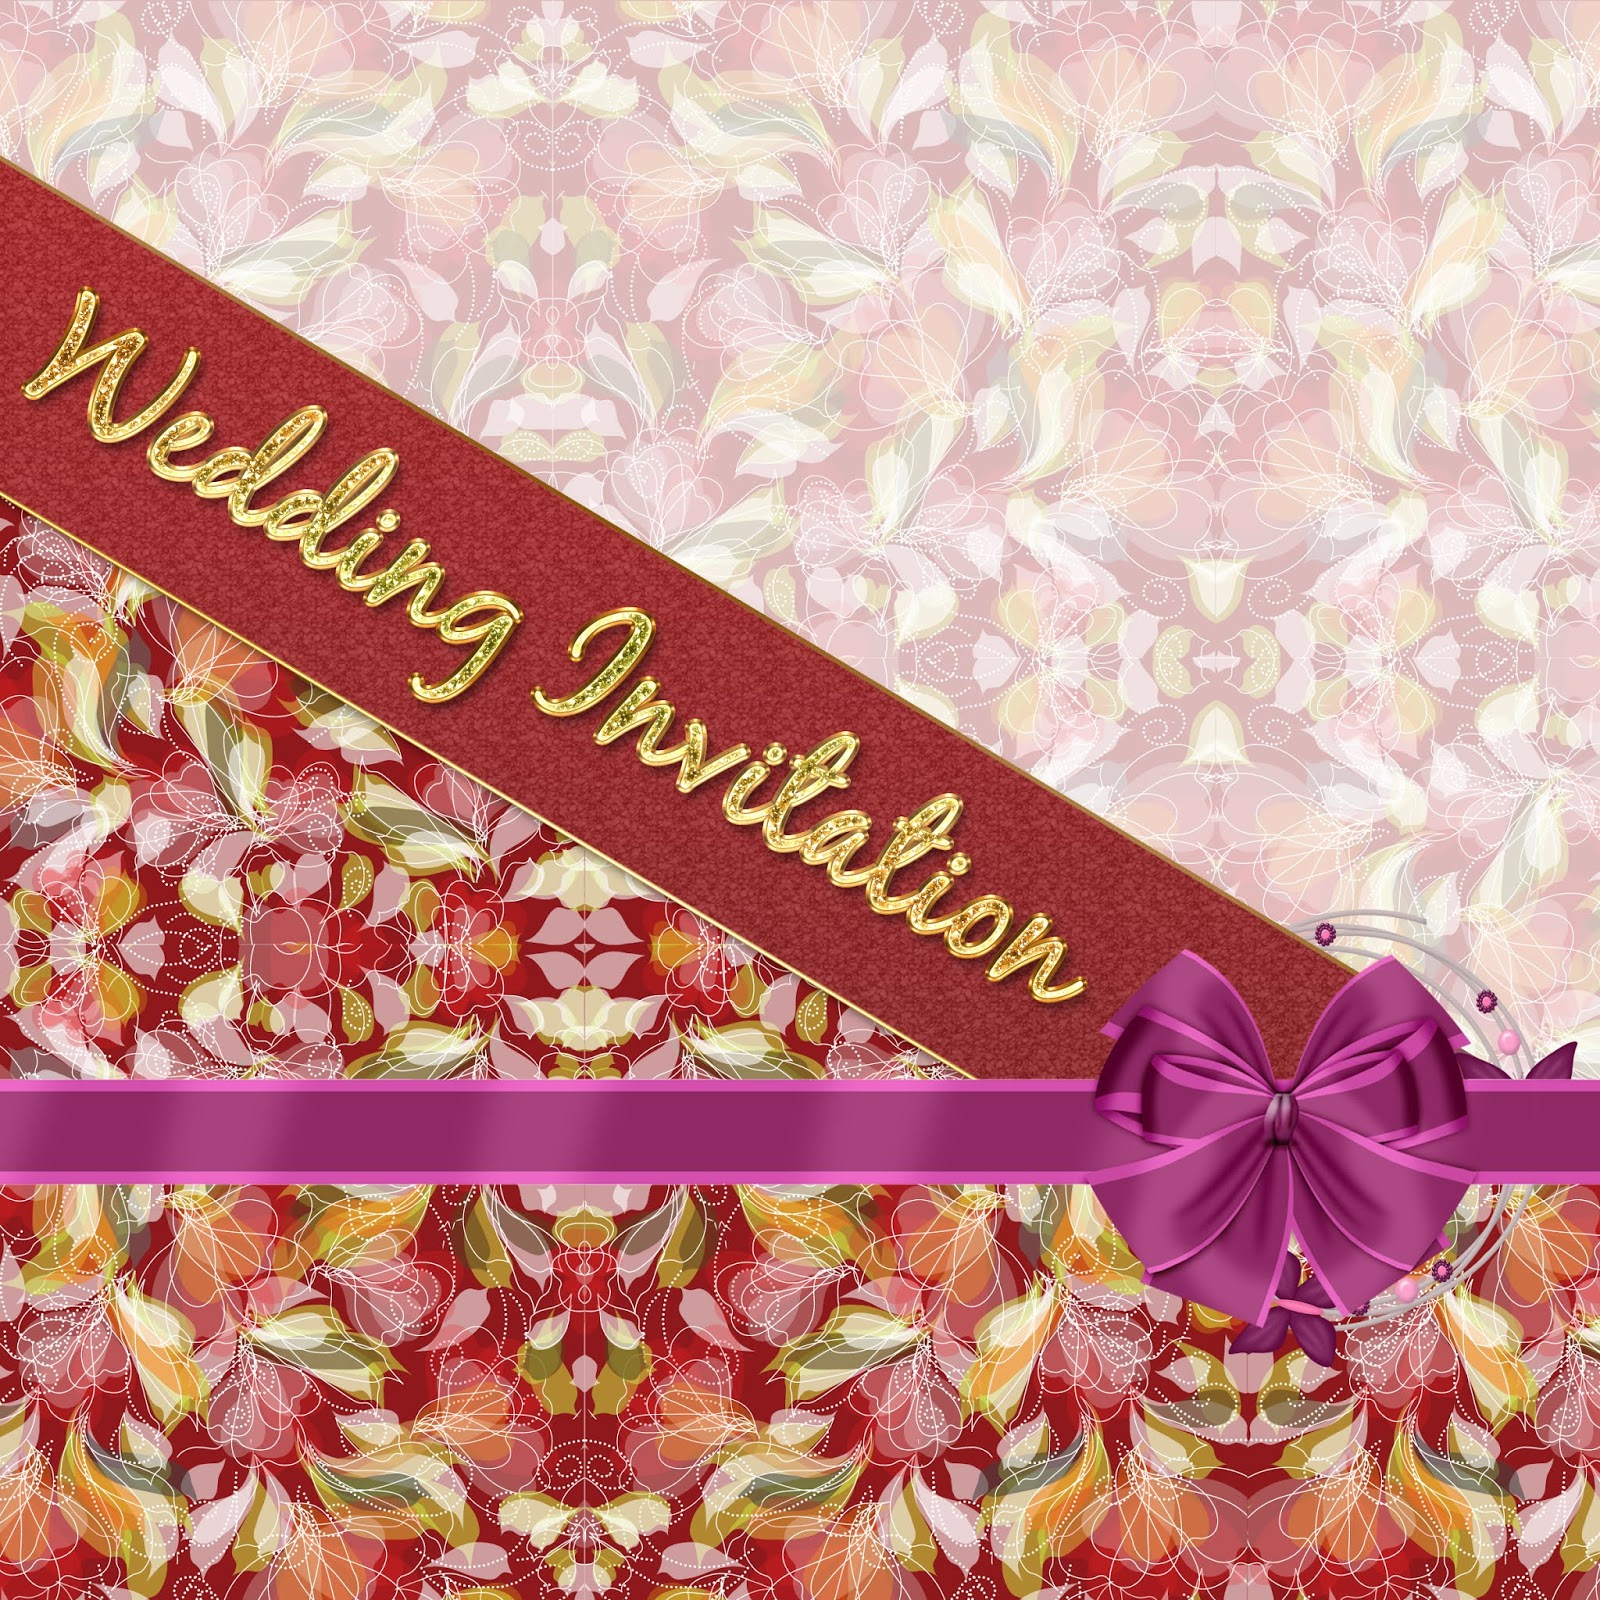 Newhindifont In Indian Wedding Invitation Card Design